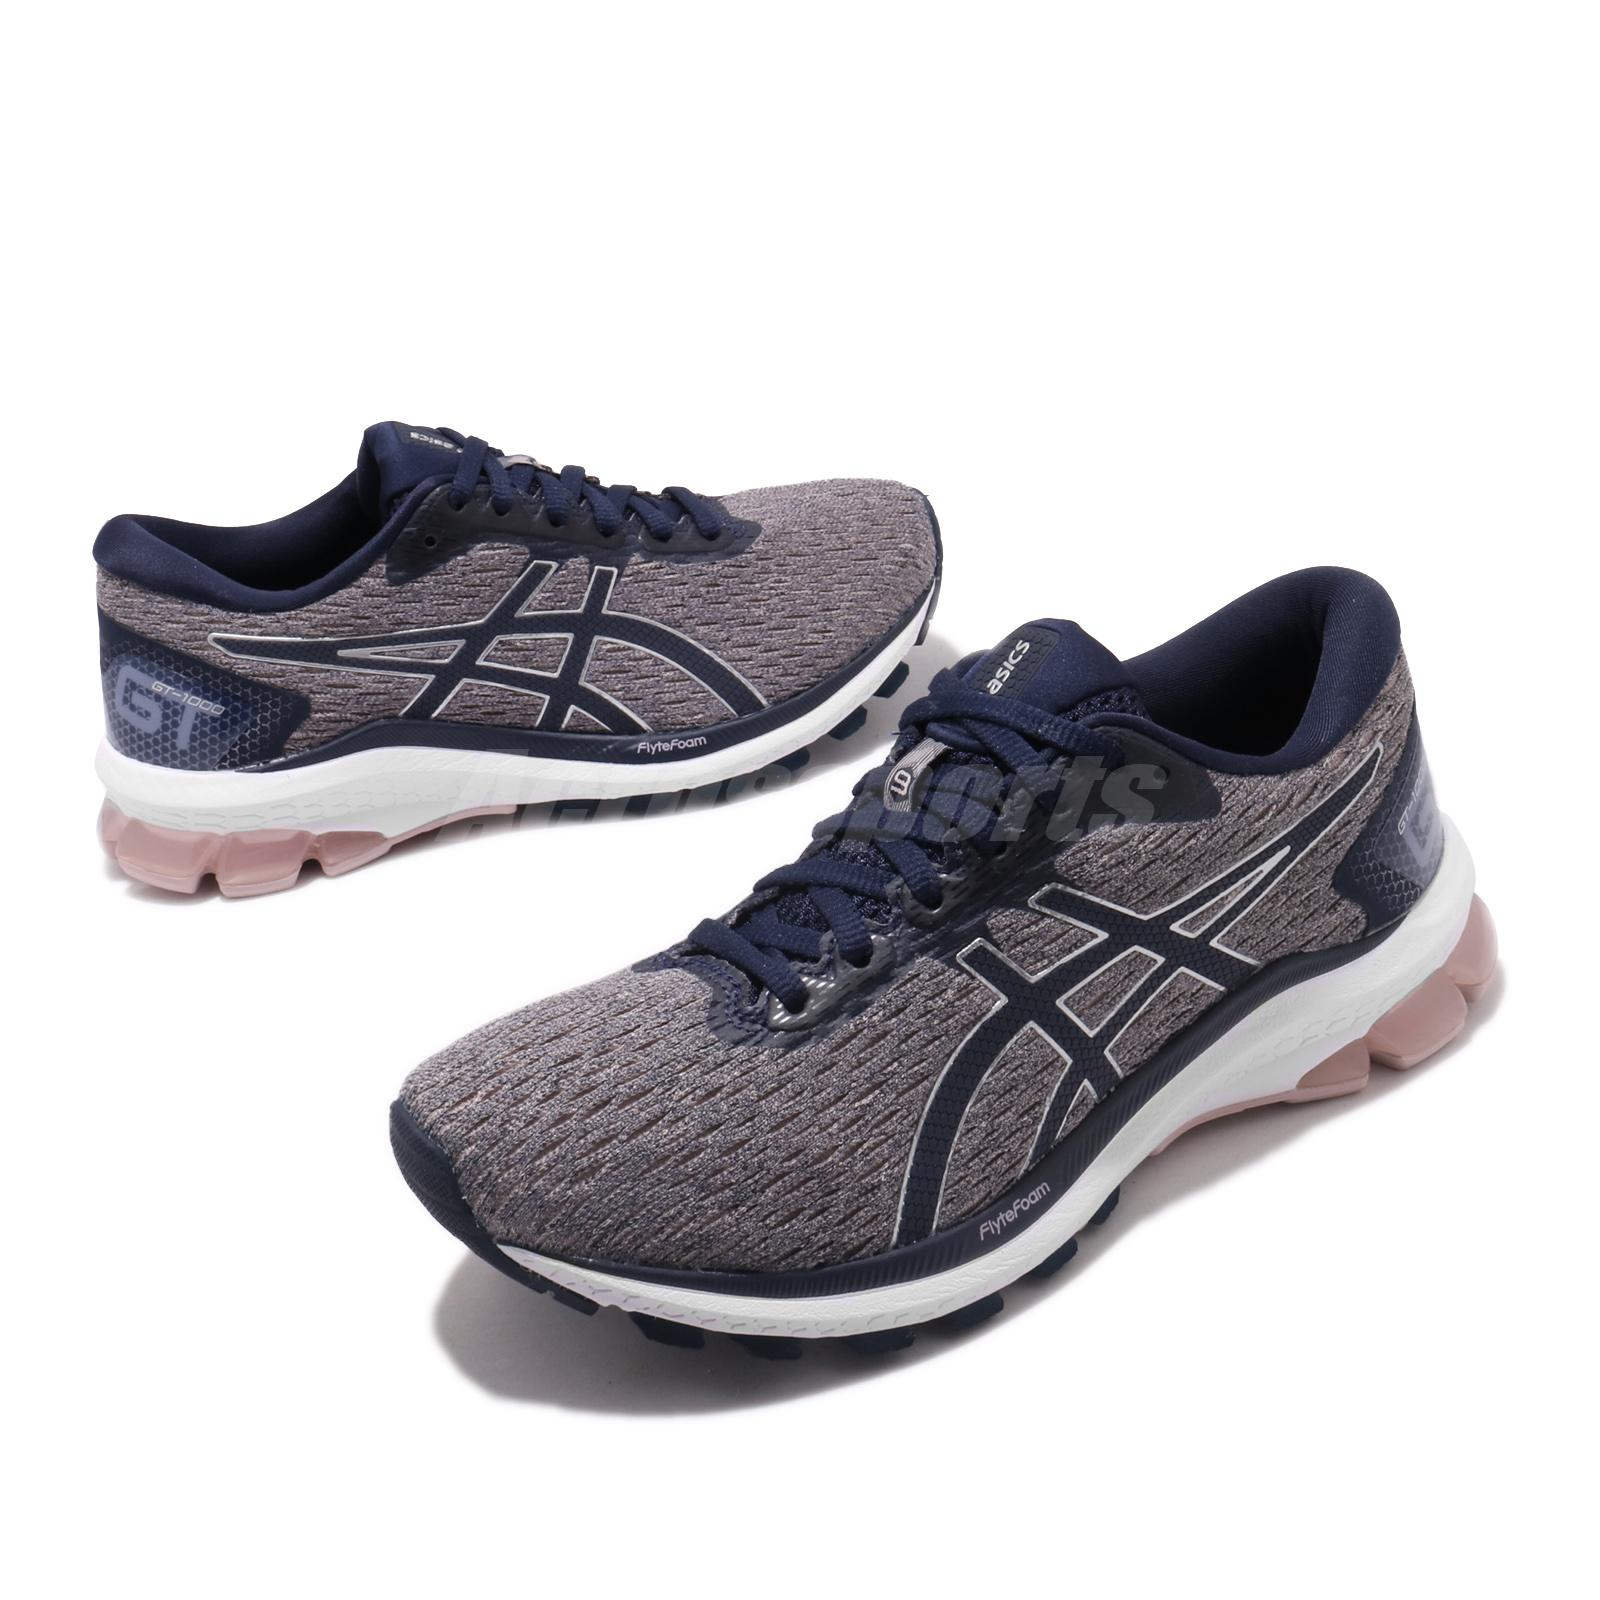 Asics GT-1000 9 D Wide Watershed Rose